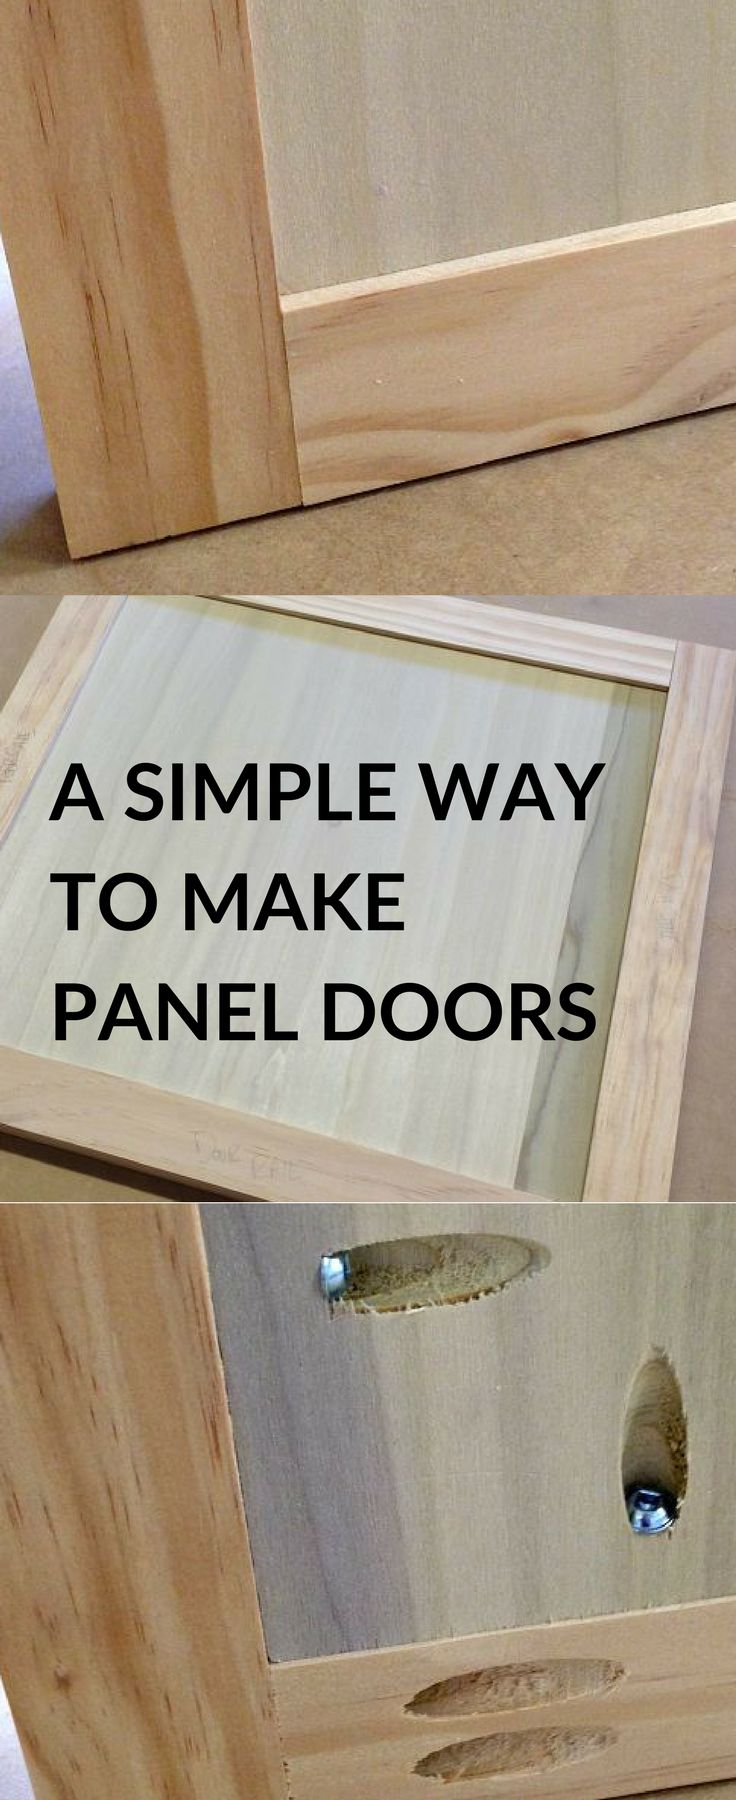 "TIP: Doors with inset panels look awesome, but building them requires sophisticated woodworking tools and techniques—right? Wrong! Just make your doors from 3/4""-thick material, and make panels from 1/2""-thick plywood. Screw the panels in place with pocket-hole screws, and you'll have a great-looking panel door without having to be a woodworking expert!"